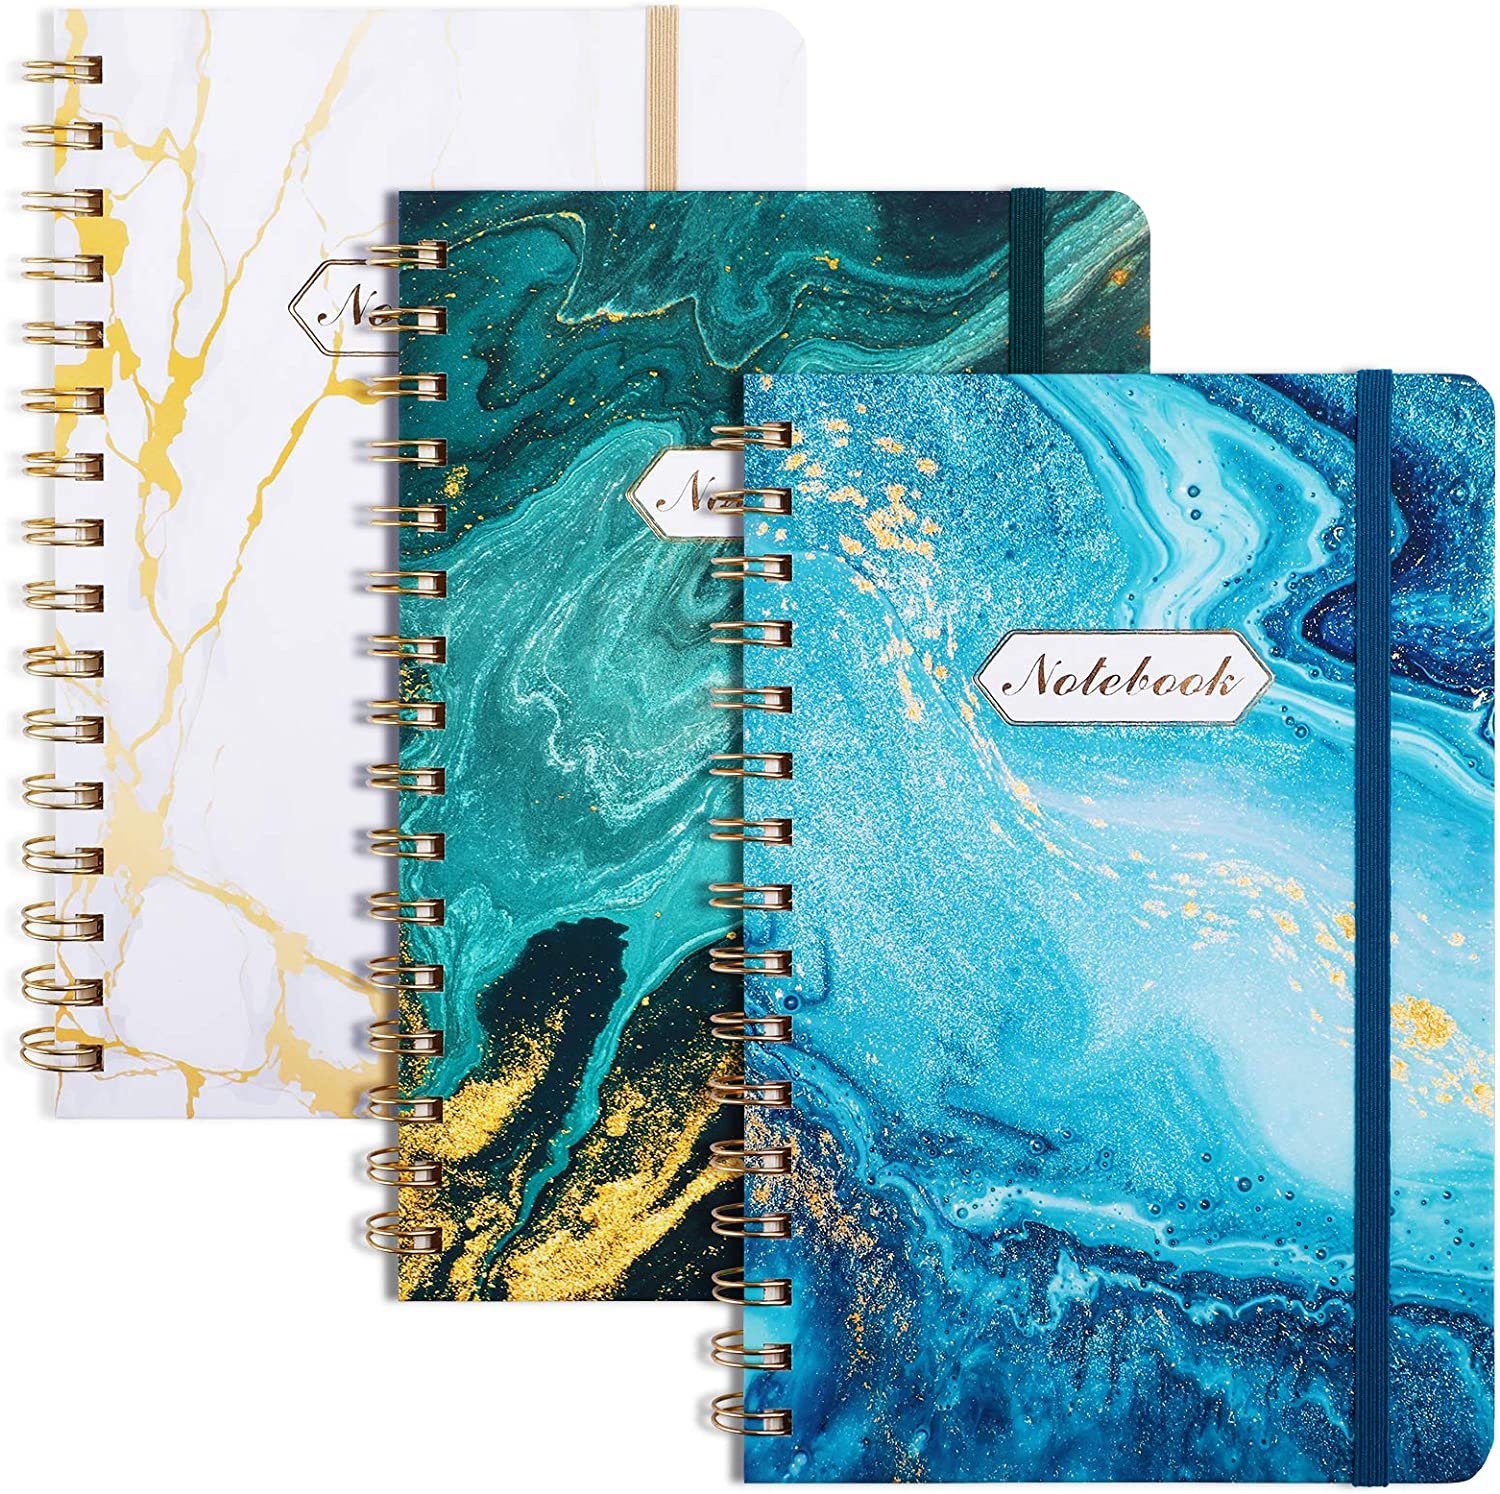 """EOOUT 3 Pack A5 Ruled Journal/Spiral Notebook, 6""""x 8.5"""", 160 Pages, Twin-Wire Binding, Marble Pattern, Back Pocket, 100gsm Paper, for Office, School Supplies : Office Products"""